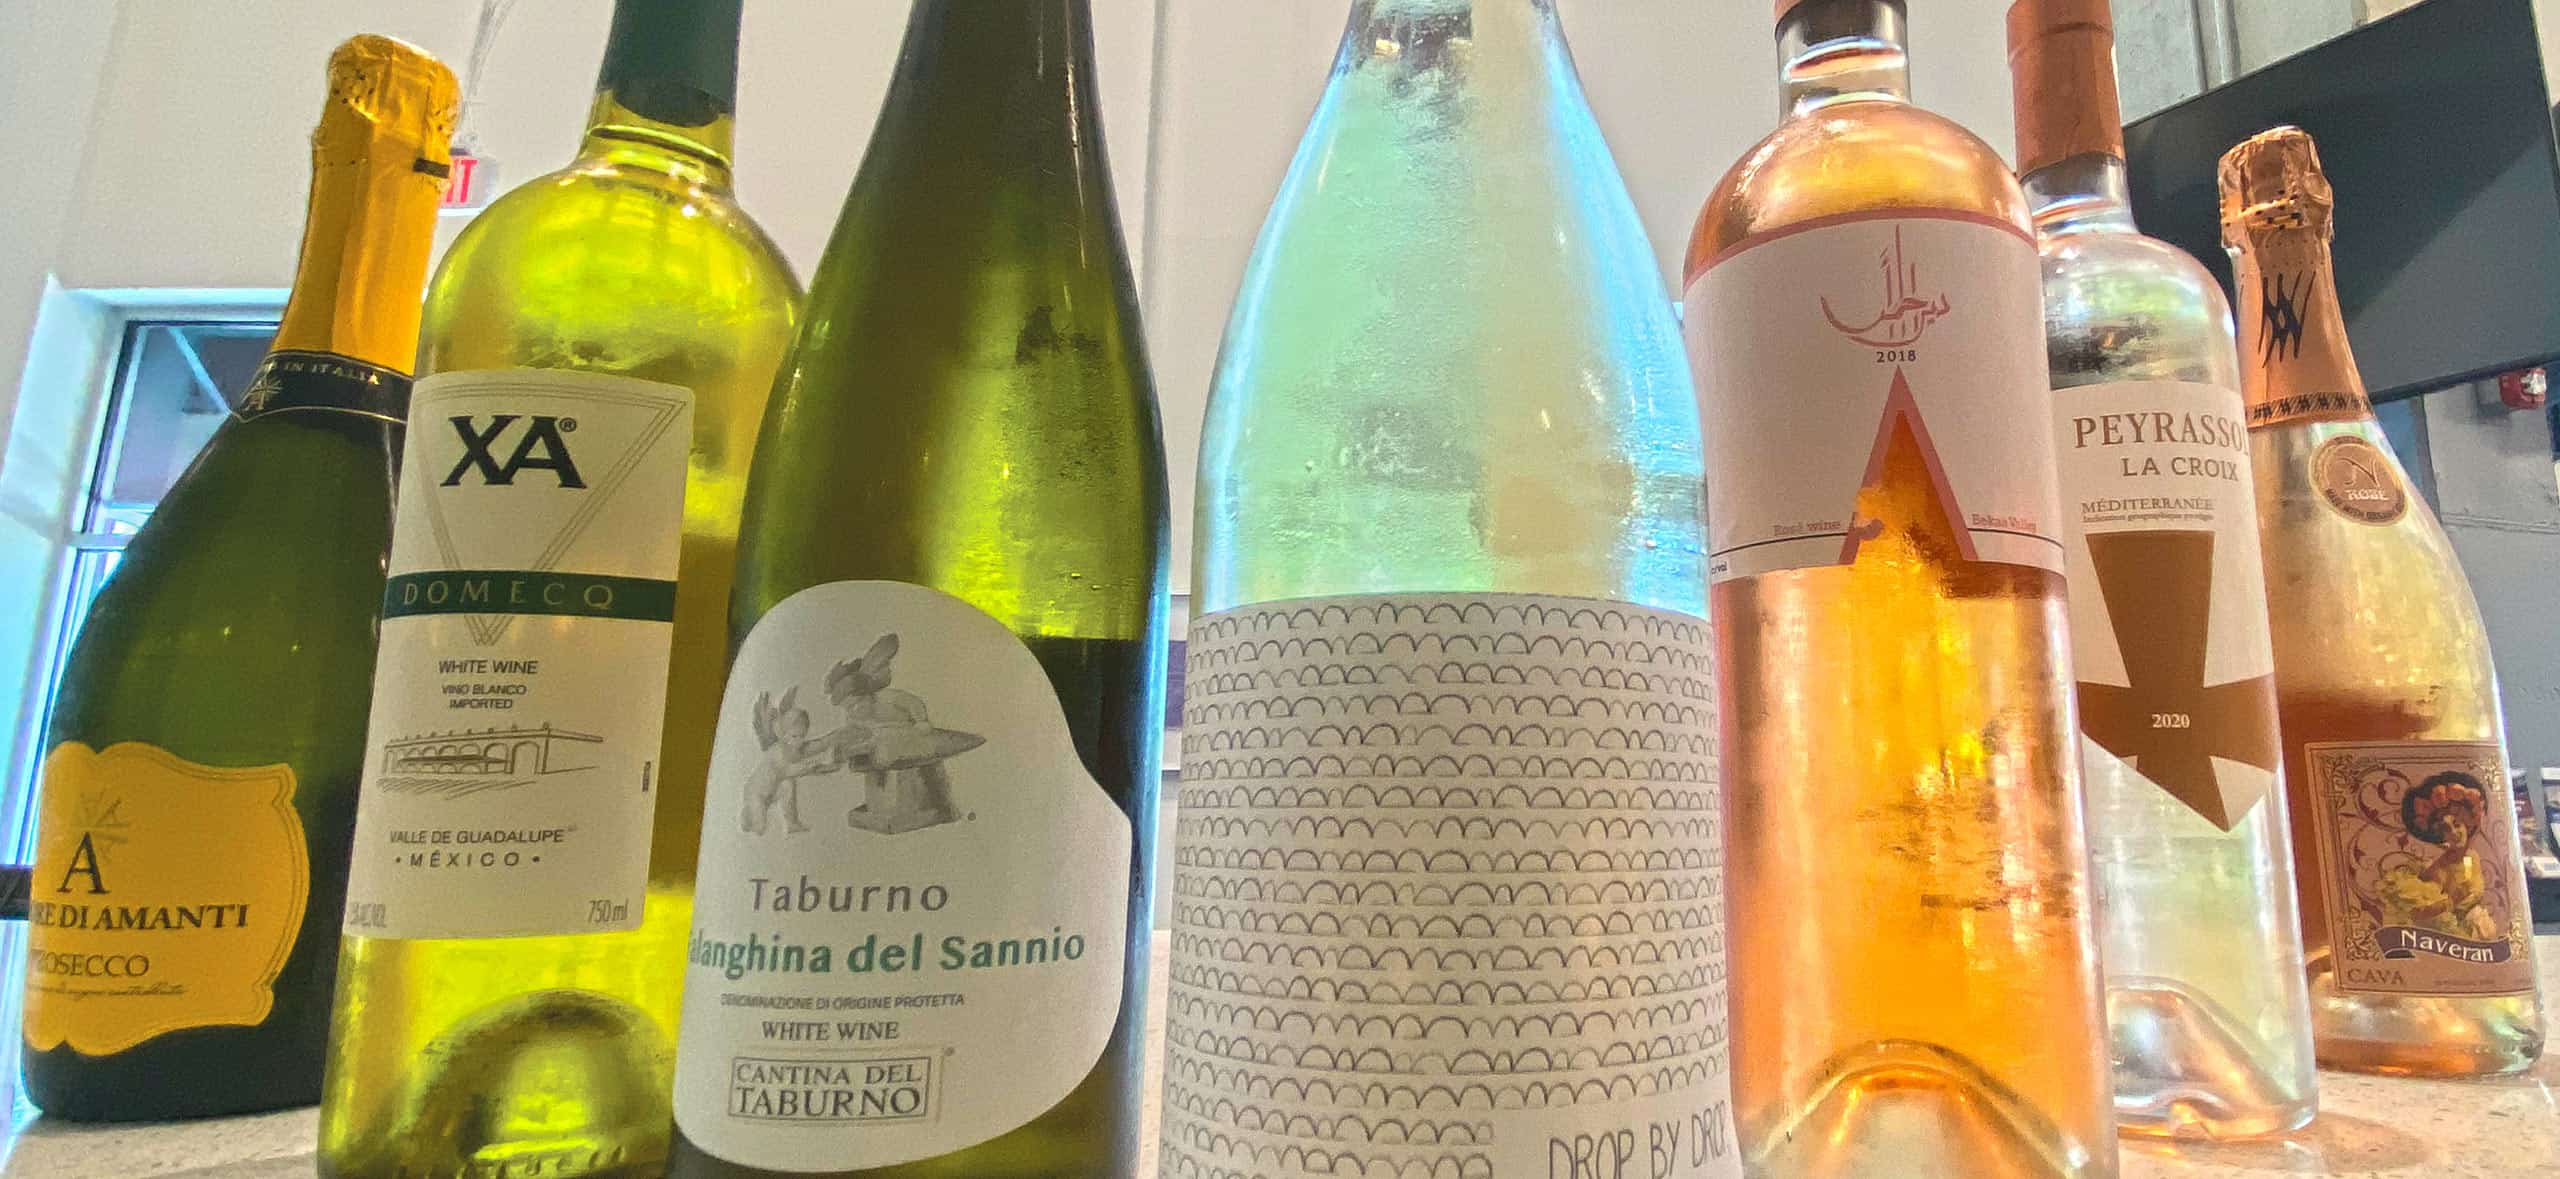 Various bottles of wine and spirits